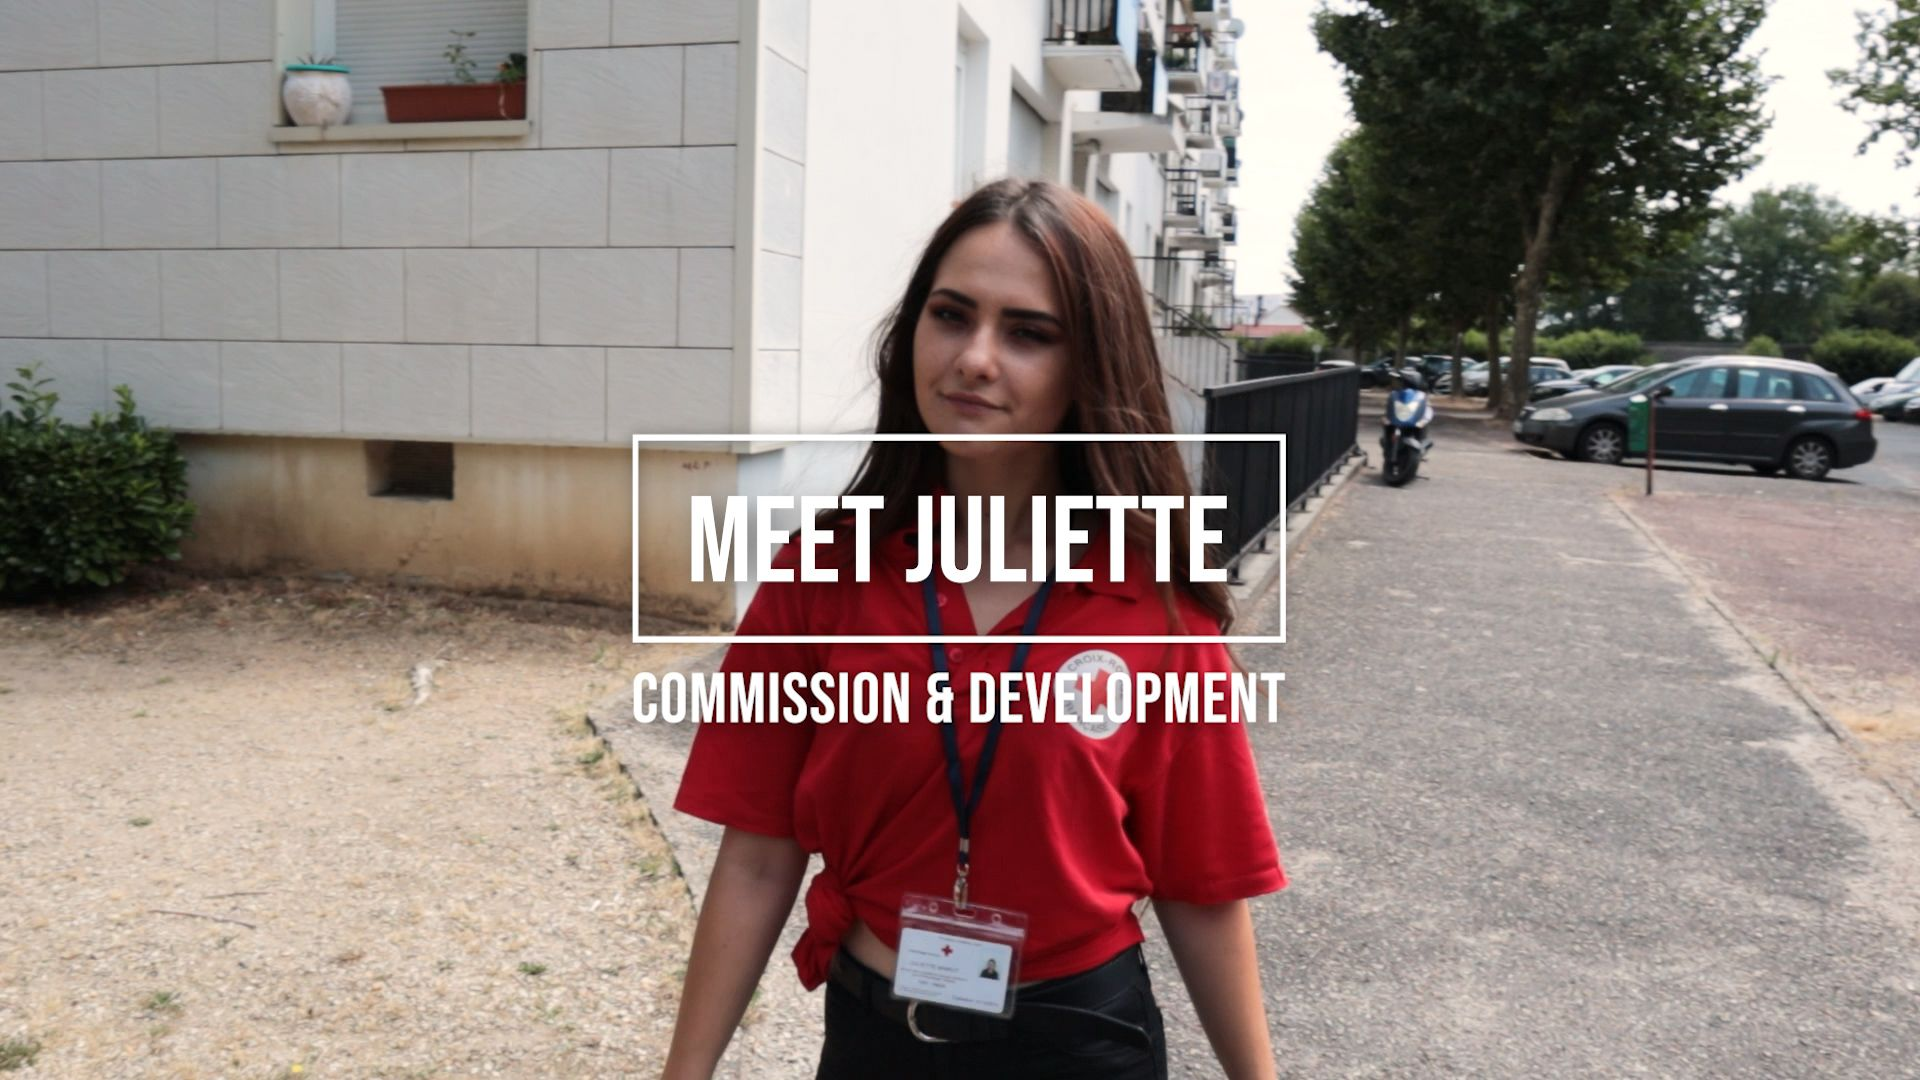 Meet Juliette: Commission and Development